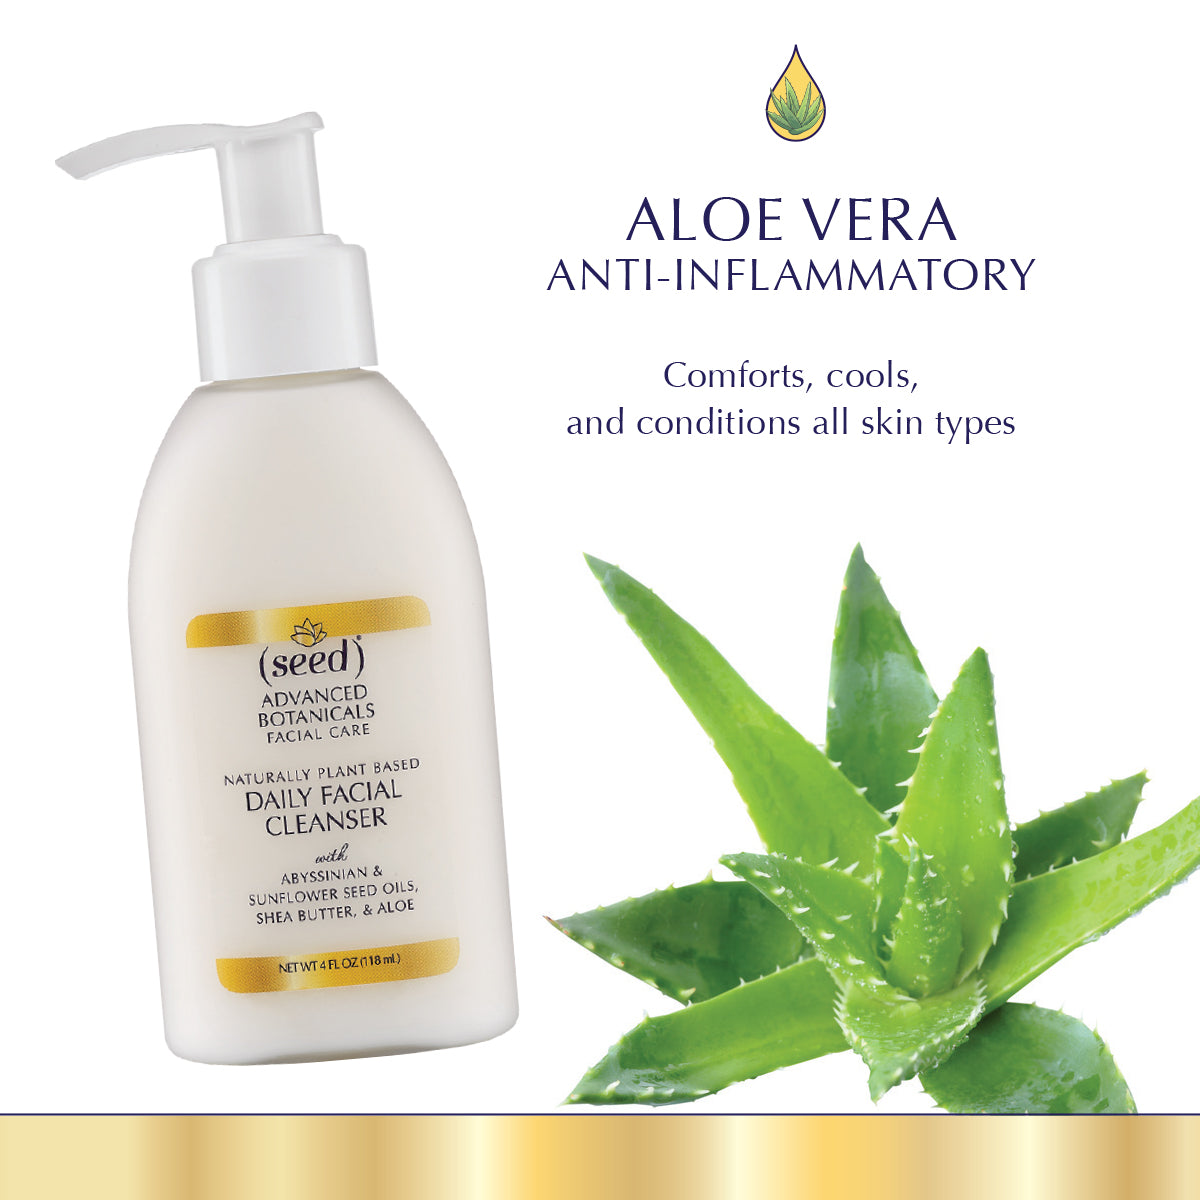 Seed Advanced Botanicals Facial Cleanser Wash features aloe vera